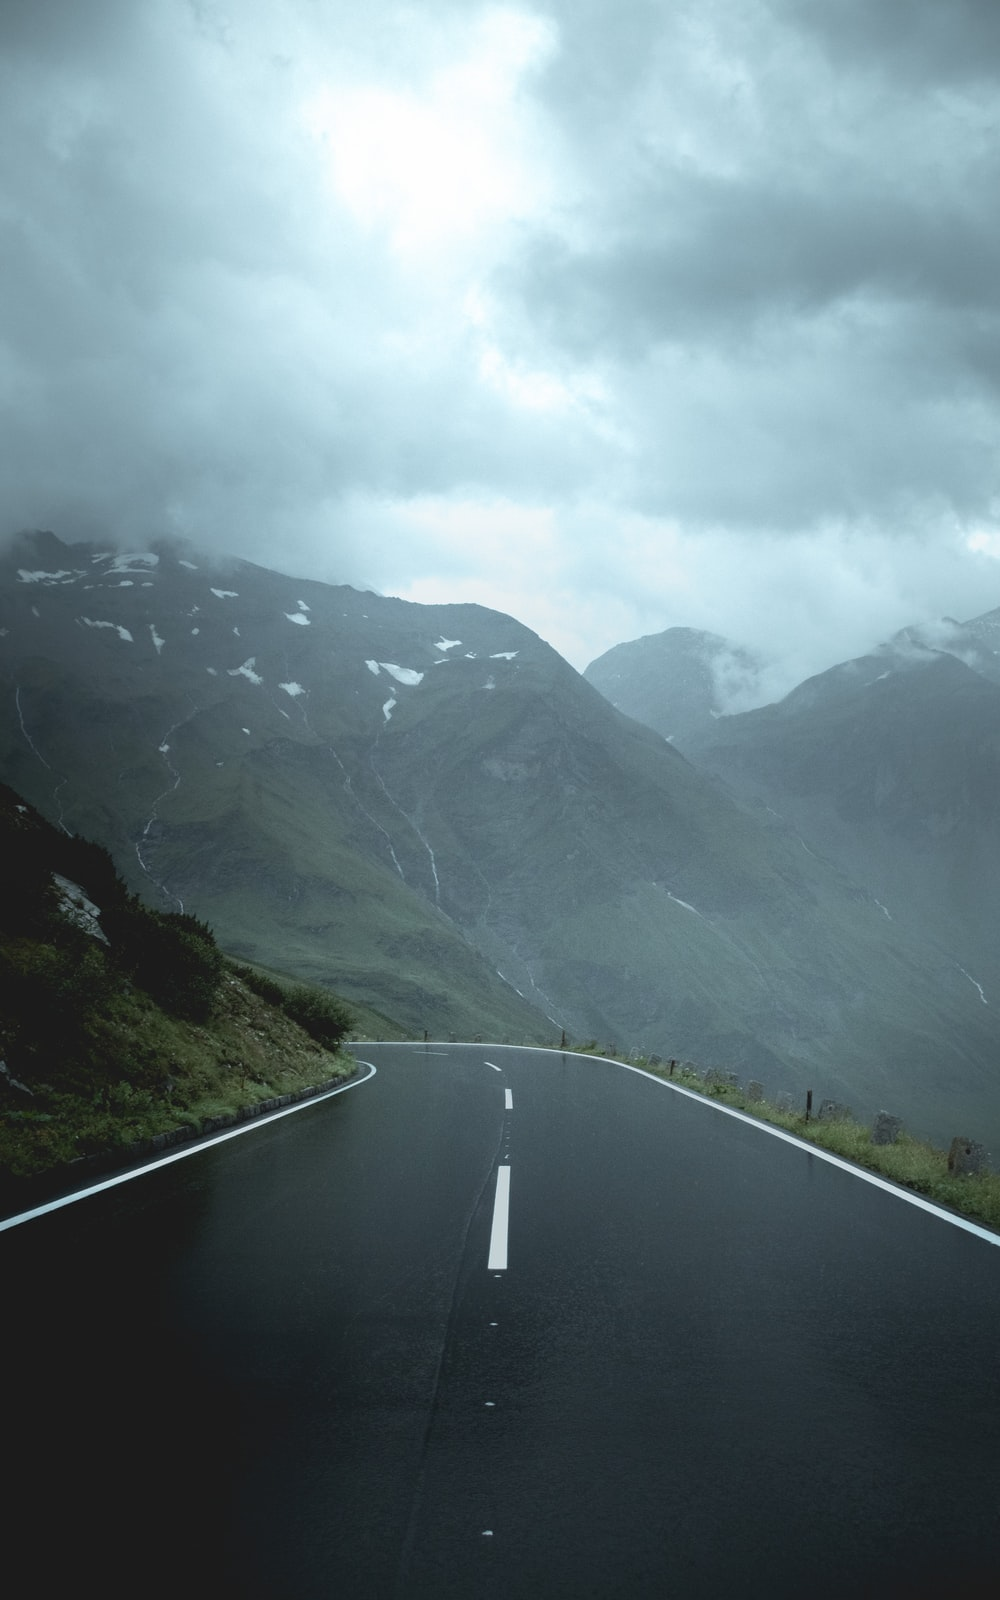 gray concrete road between green mountains under white clouds during daytime